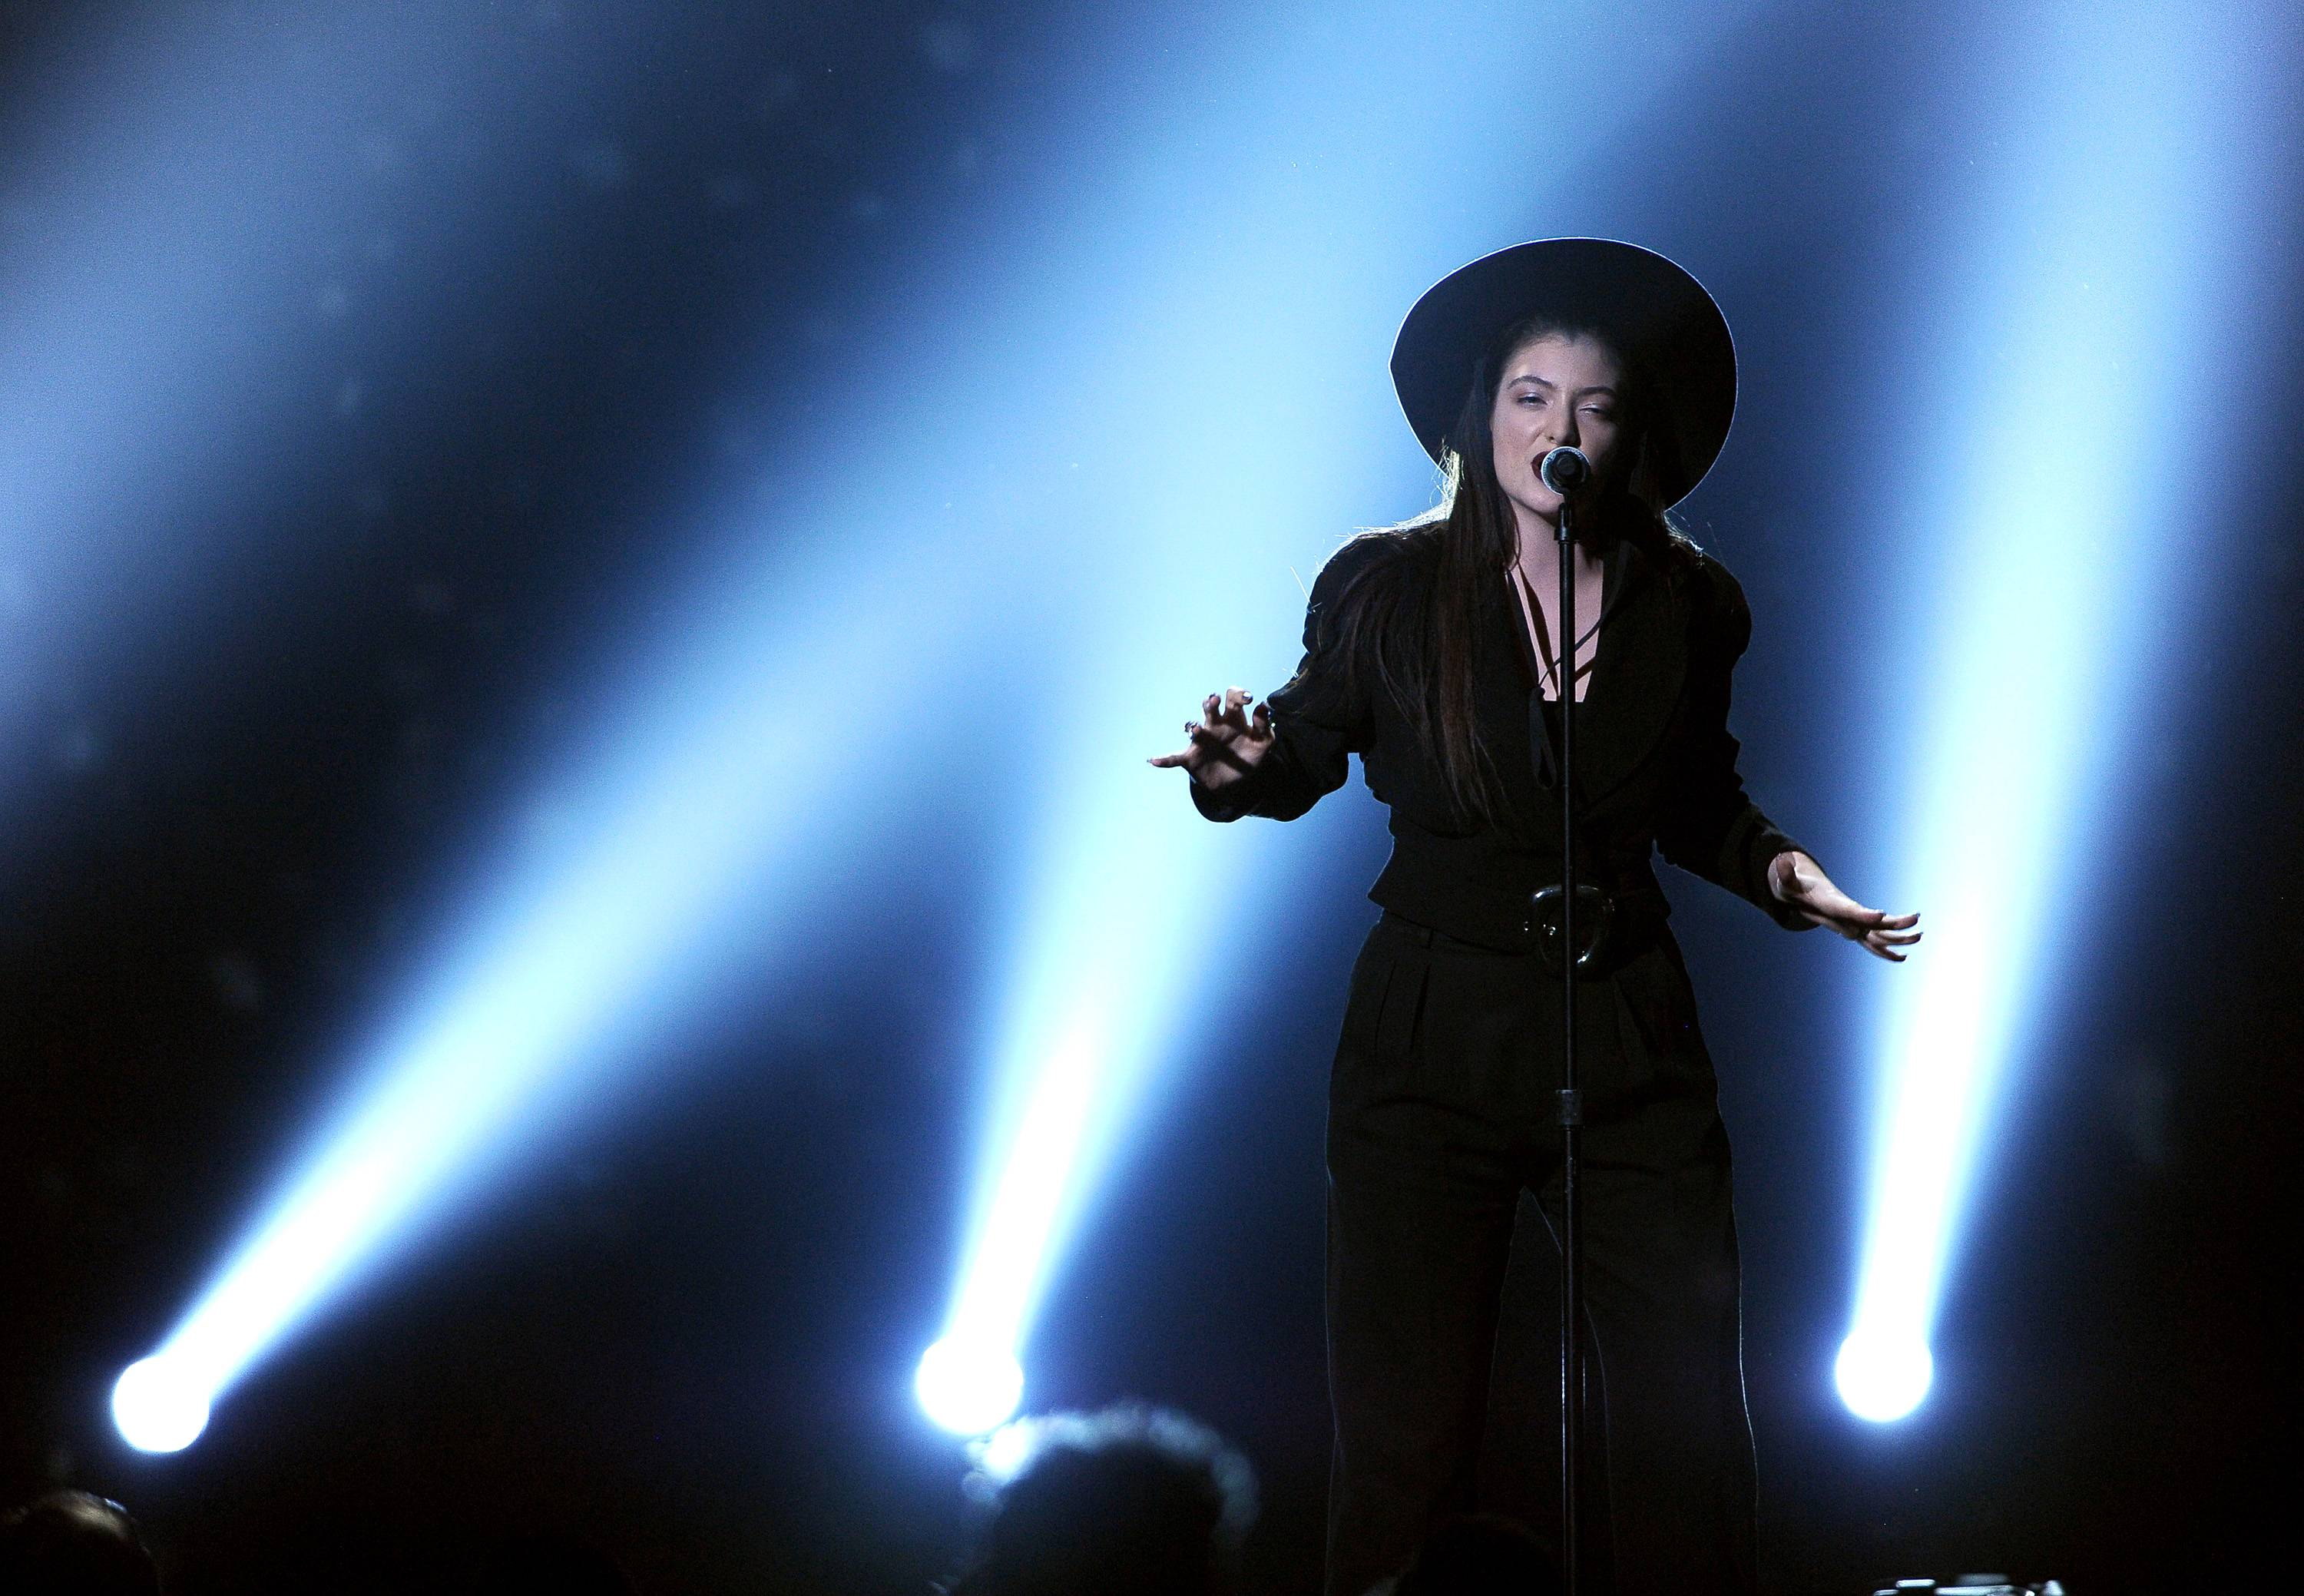 Lorde performs on stage at the Billboard Music Awards at the MGM Grand Garden Arena on Sunday in Las Vegas.